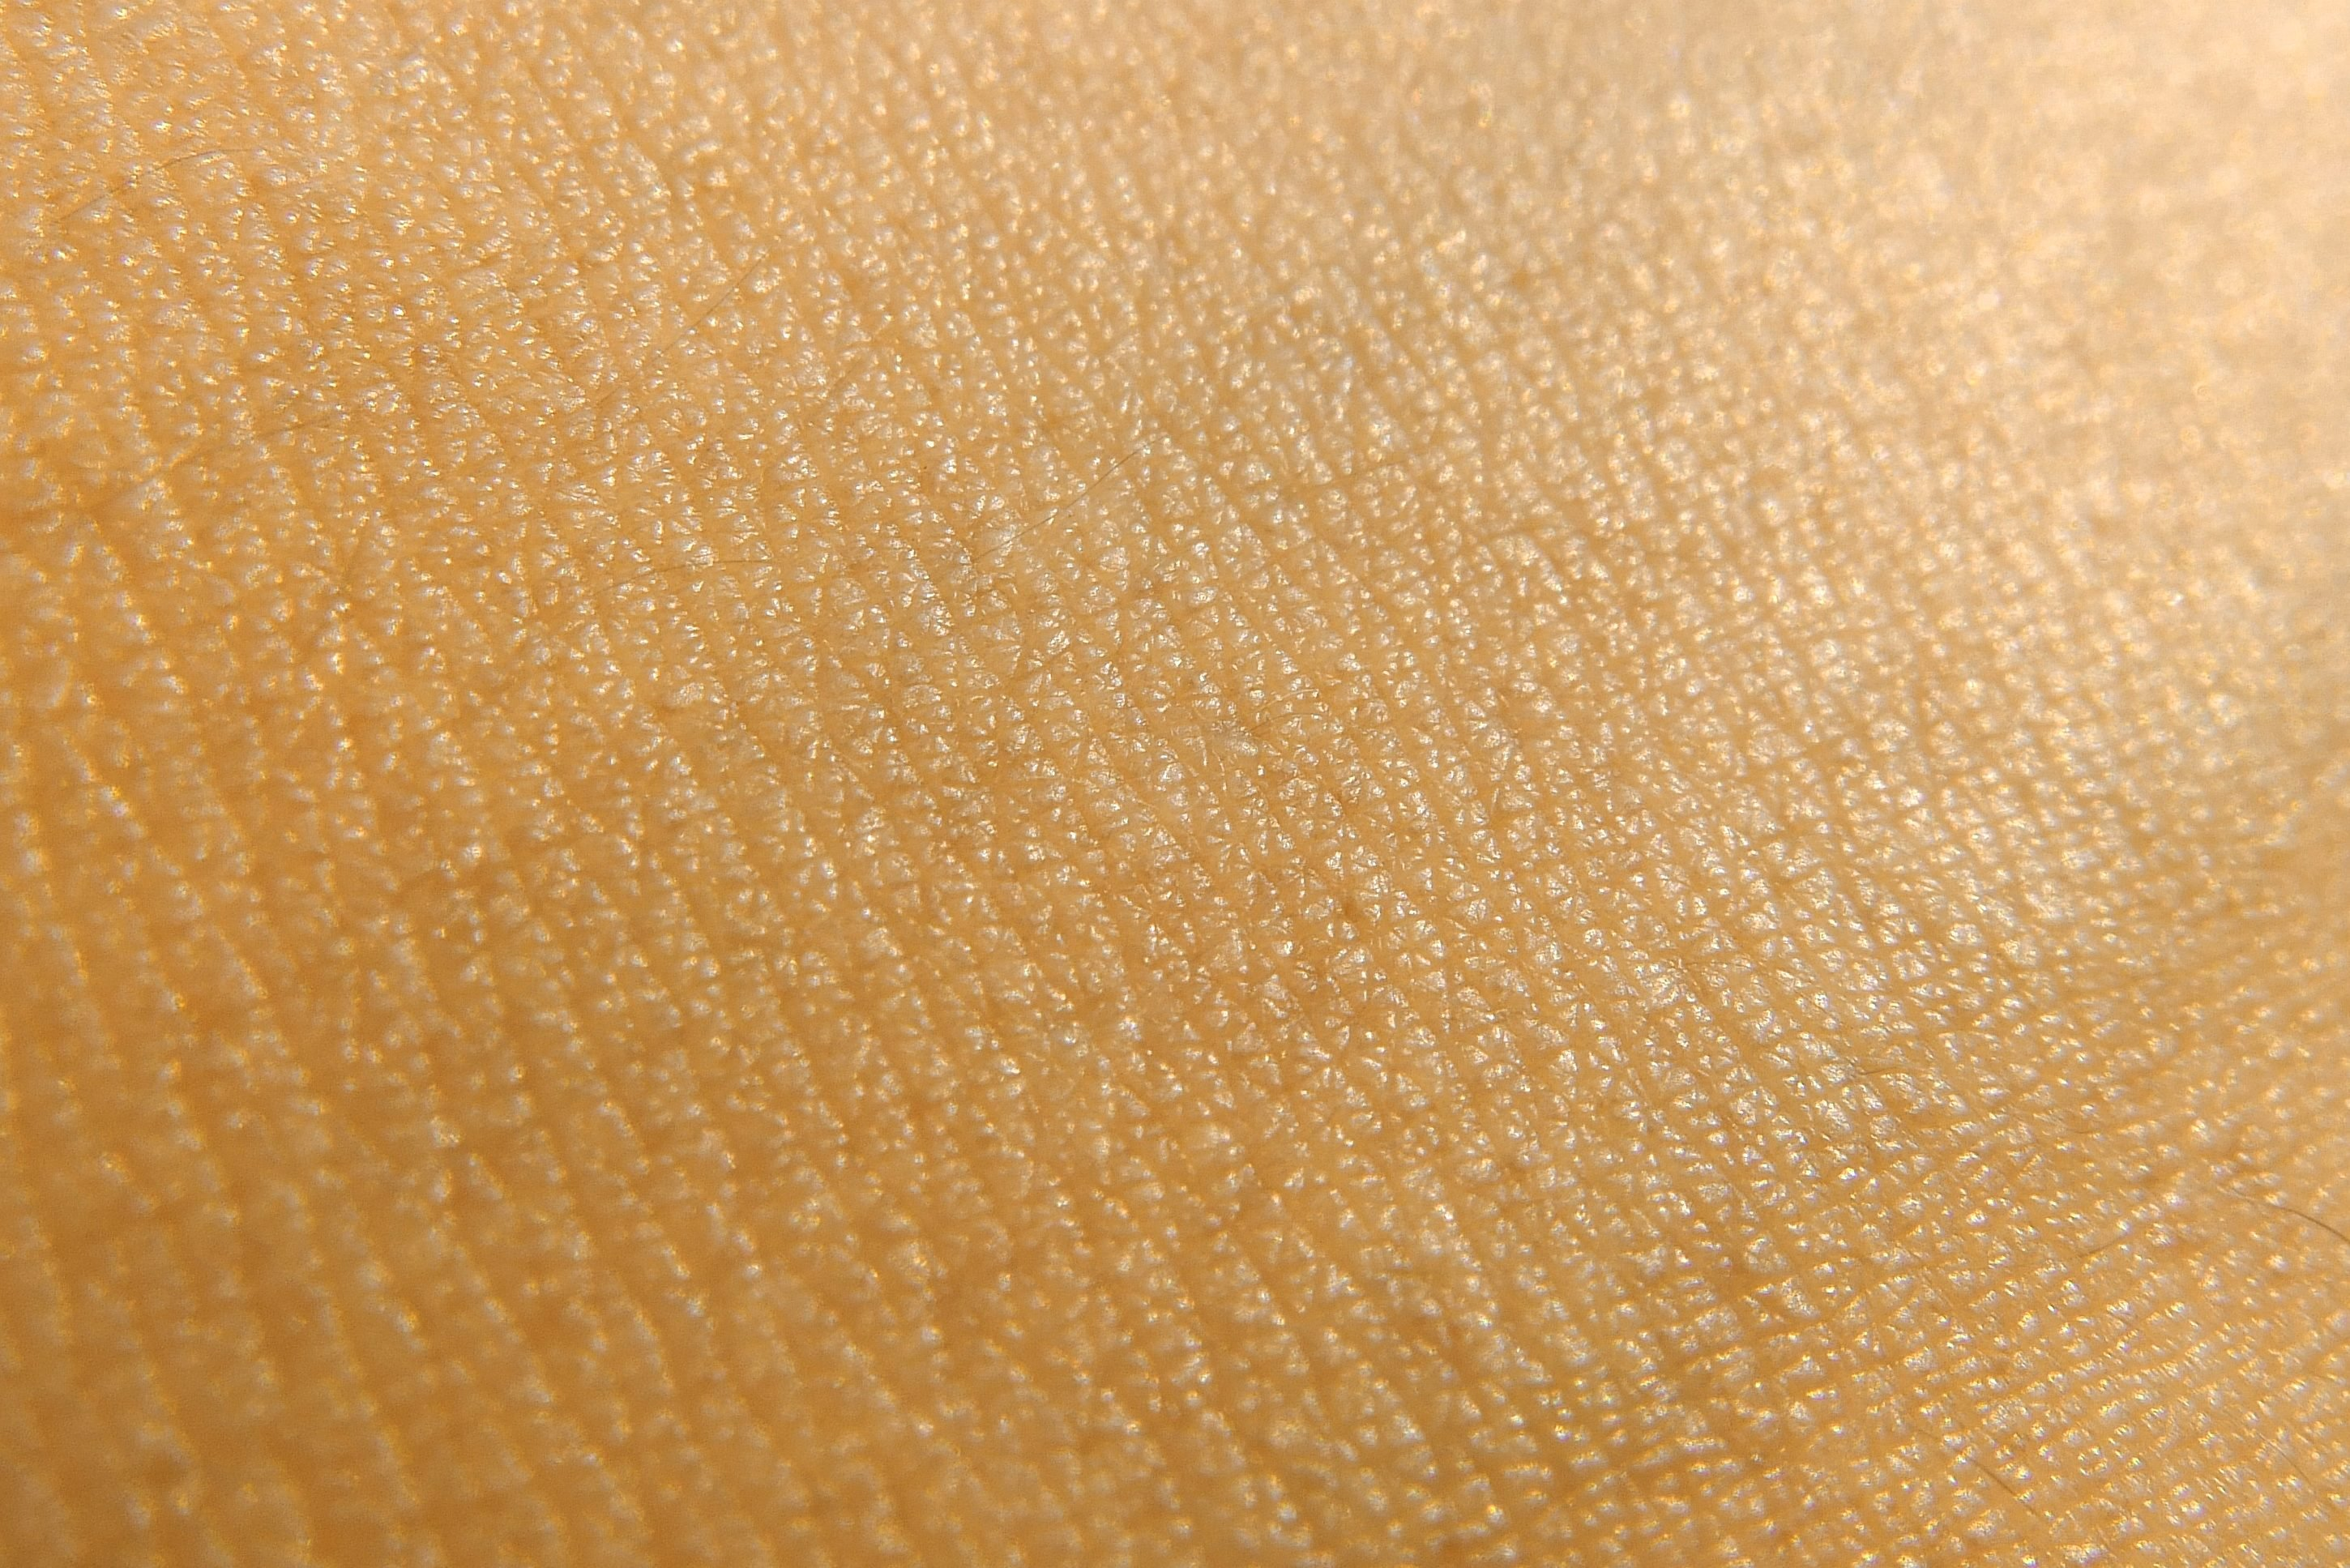 close up of skin